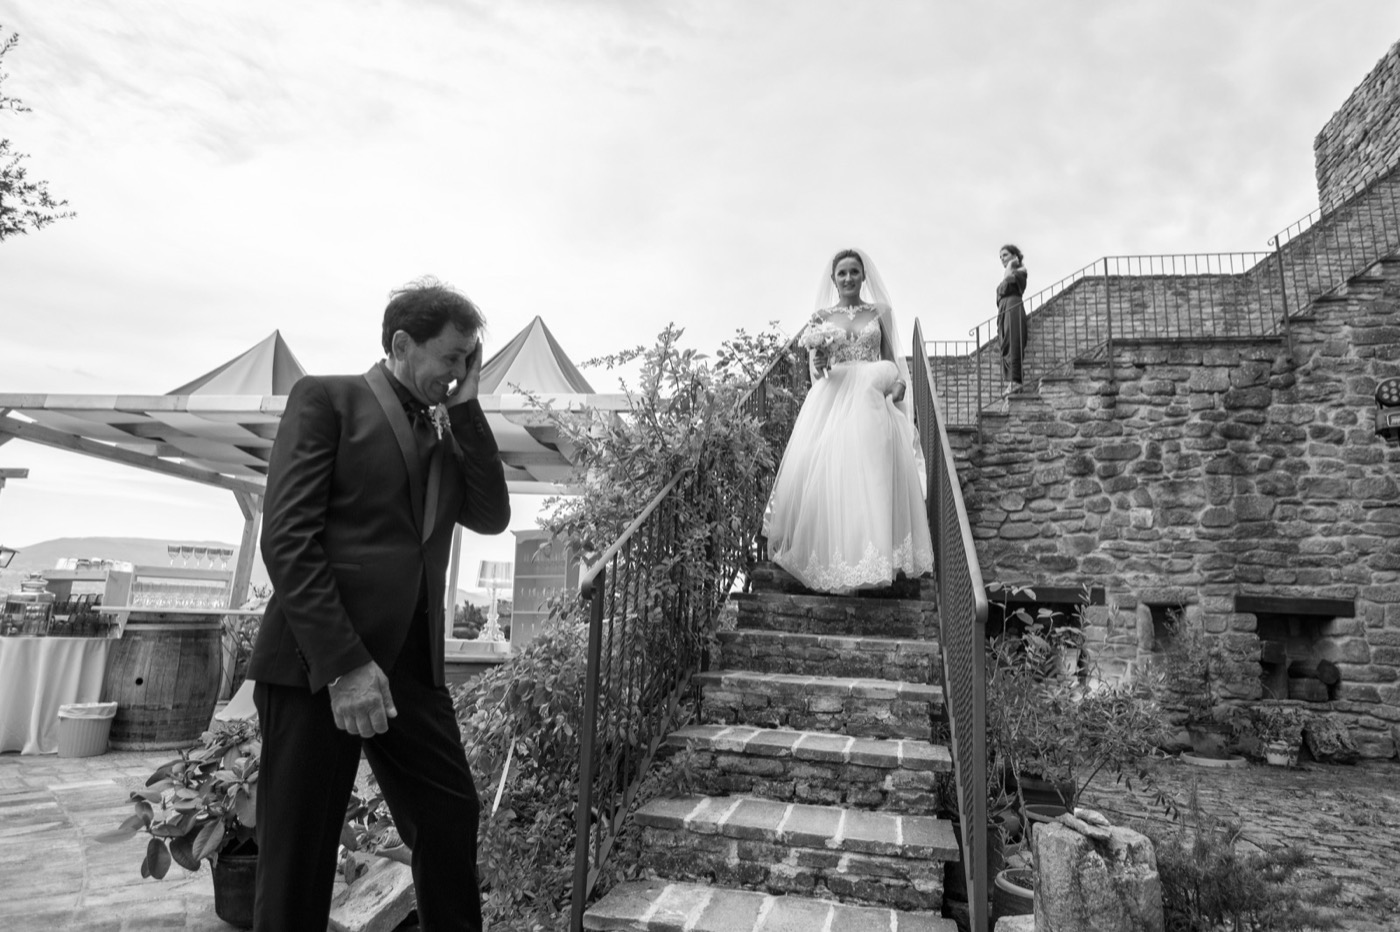 Claudio-Coppola-wedding-photographer-castello-rosciano-torgiano-28